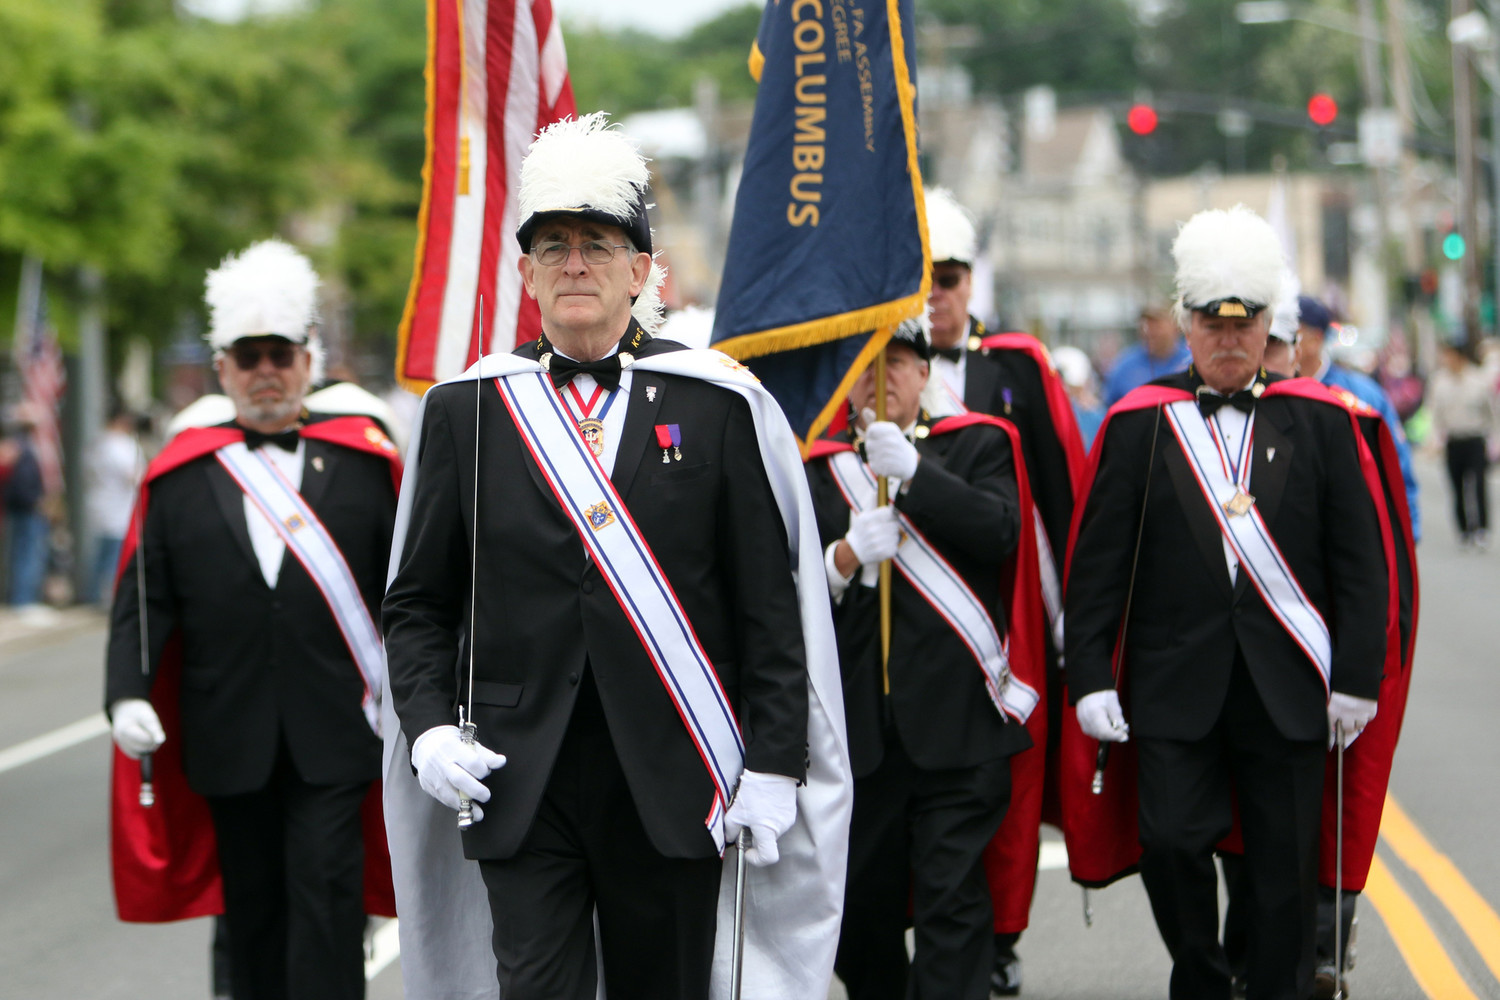 Members of the Knights of Columbus march in the Memorial Day Parade in Smithtown, N.Y., May 28. Motivated by the upcoming change on the Supreme Court, the Knights of Columbus is urging its members and all Catholics to join in an Aug. 3-Sept. 28 novena to pray for the protection of human life in the law.